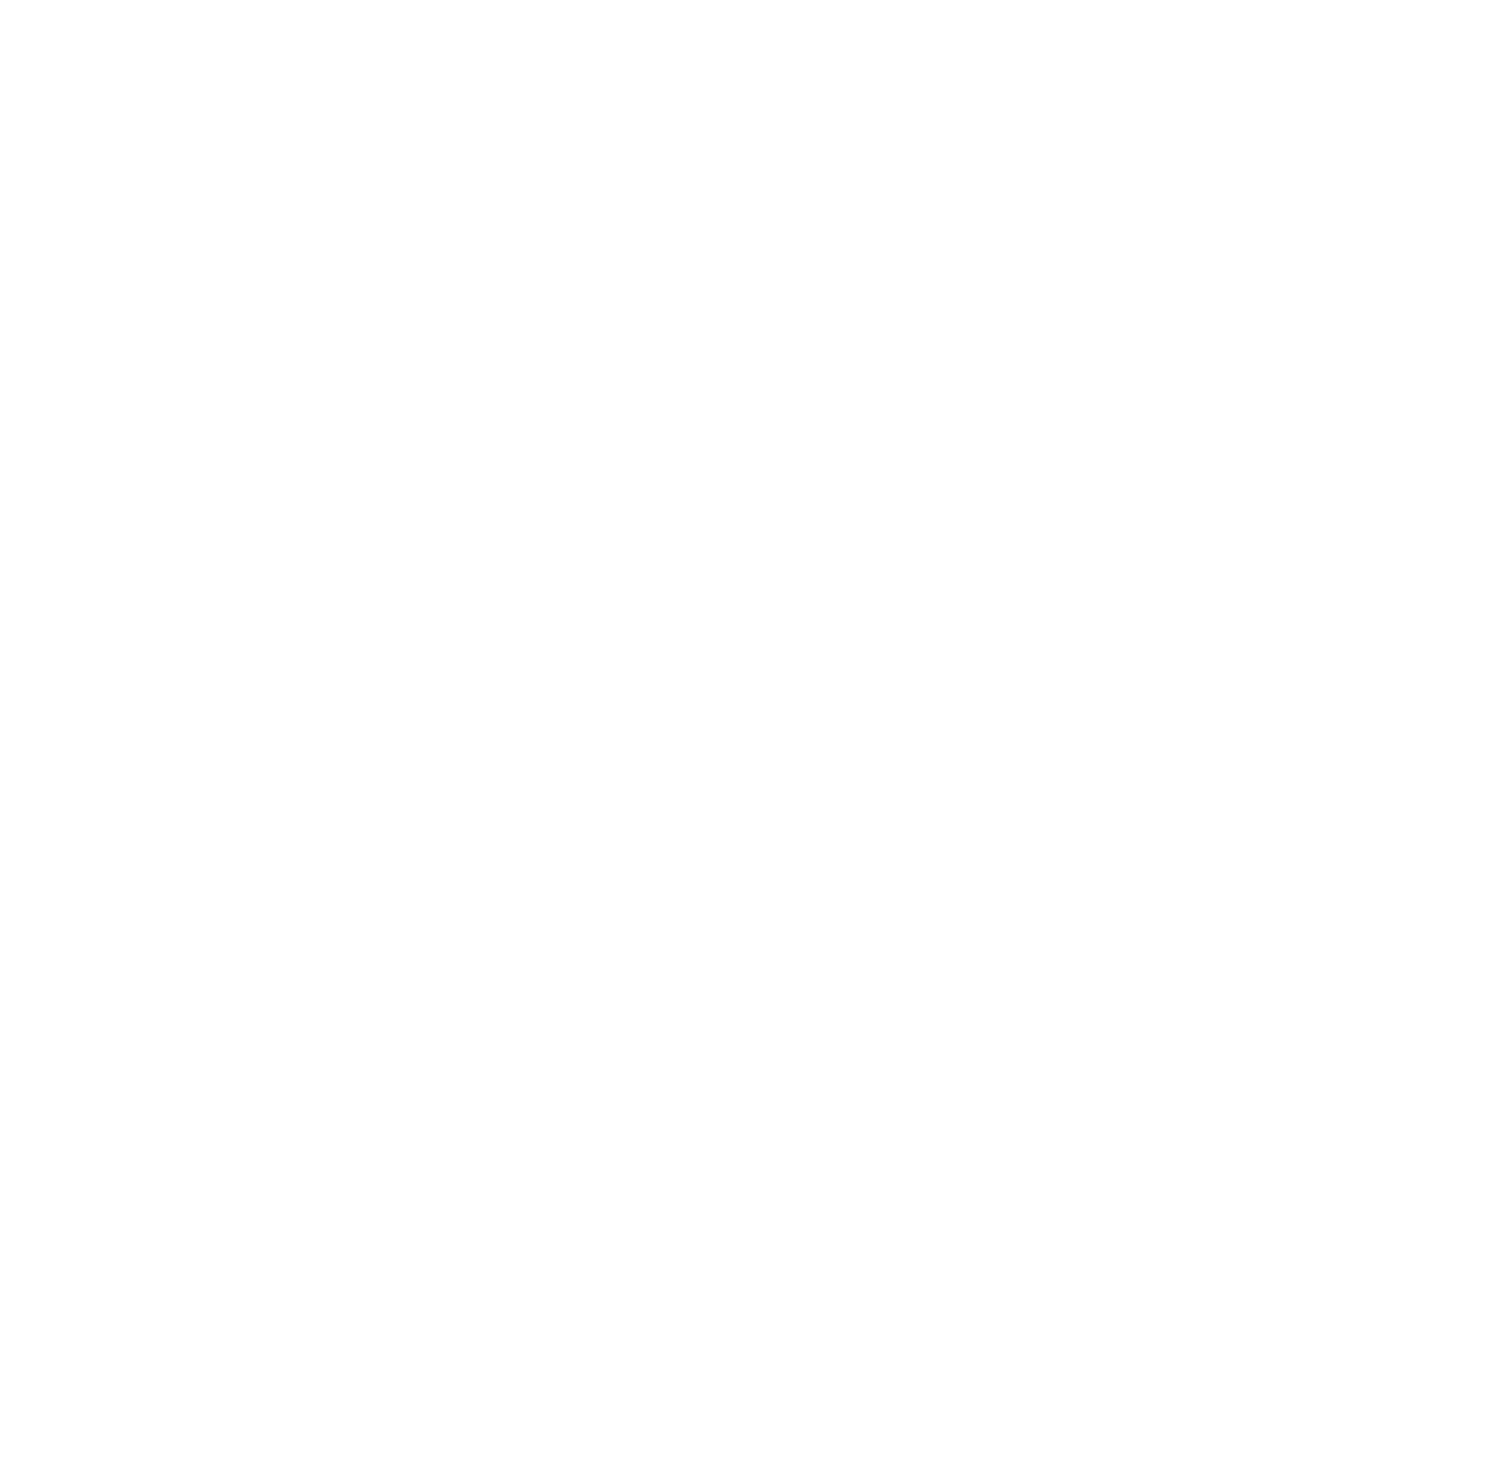 Utah Child Care Coalition